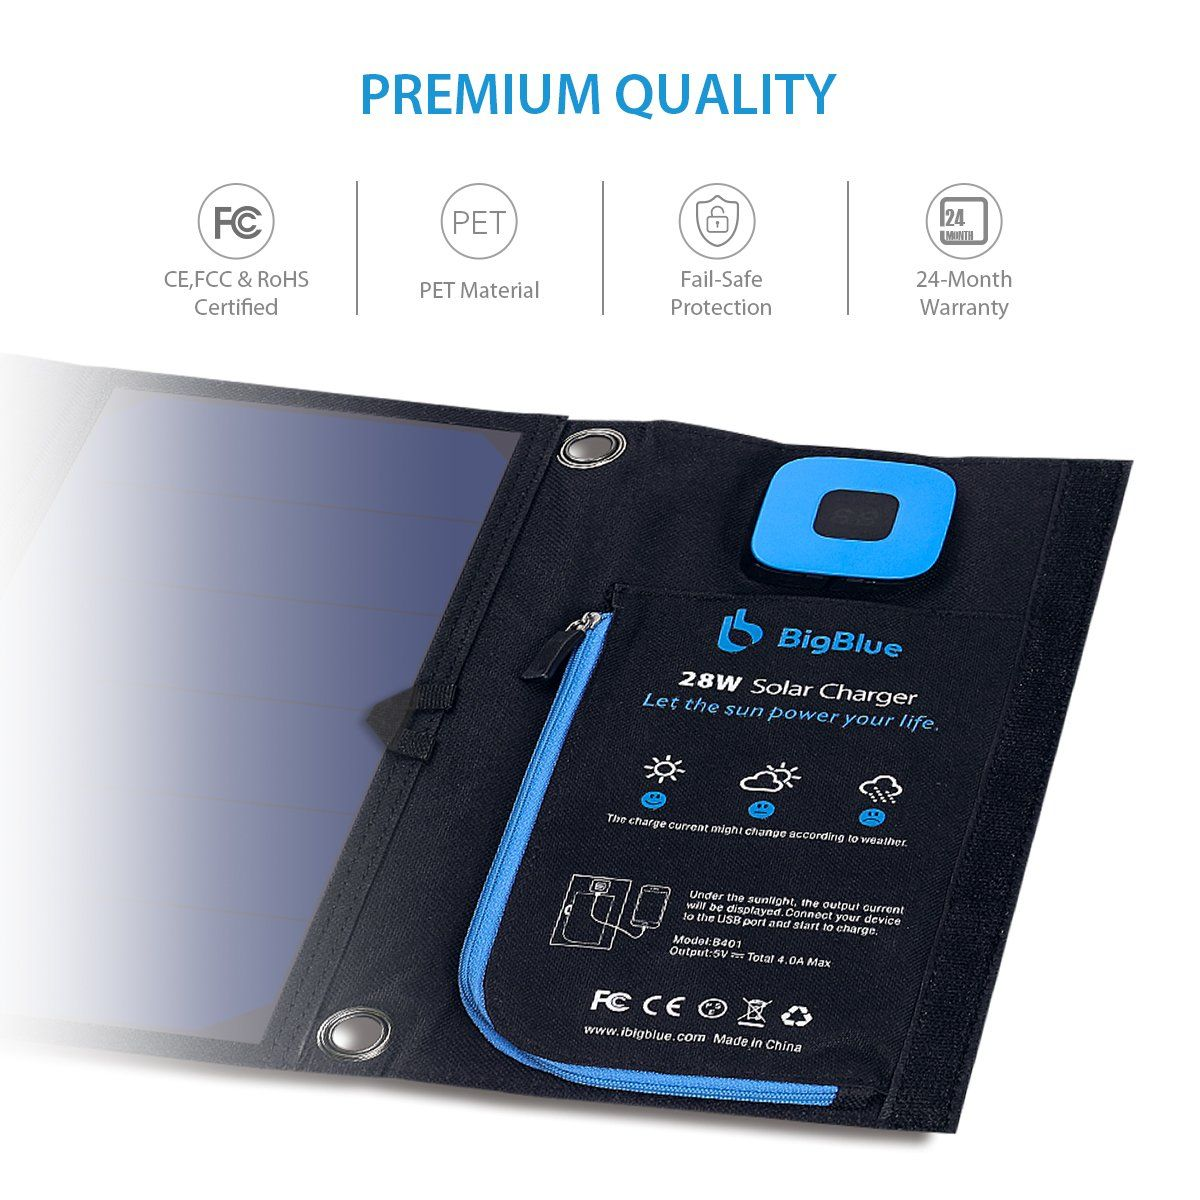 Bigblue 5v 28w Solar Charger With Digital Ammeter Waterproof Foldable Dual Usb Ports Solar Battery Charger Solar Charger Digital Ammeter Solar Charger Portable